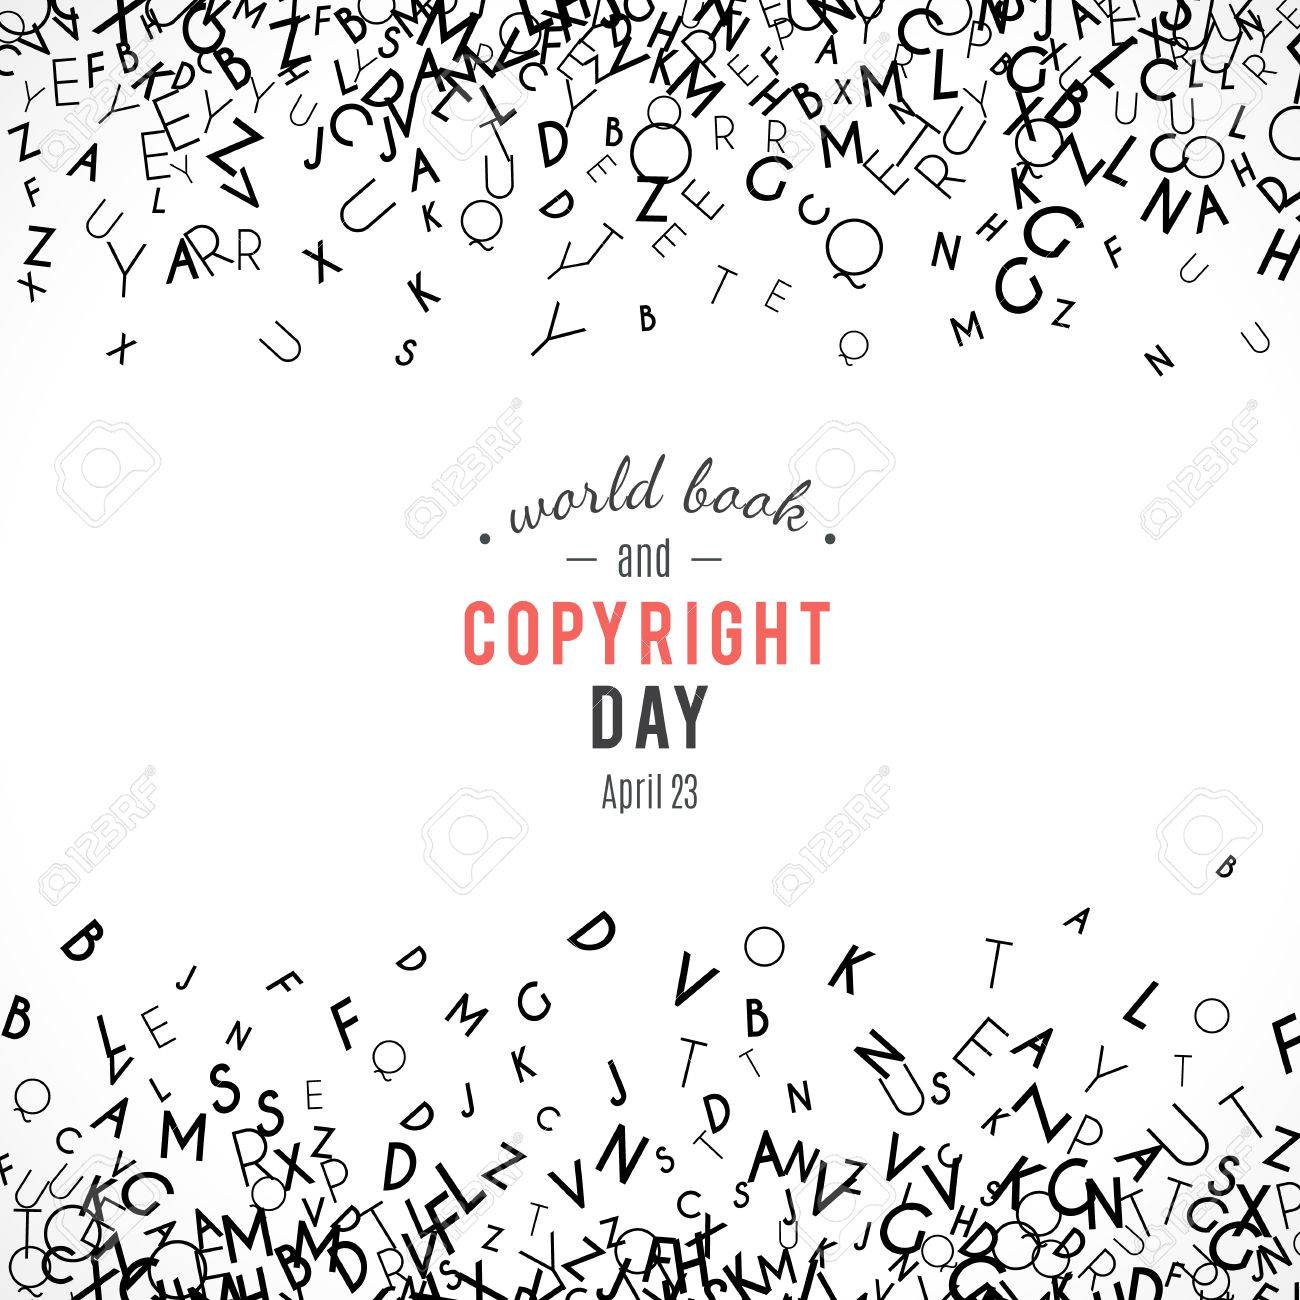 Abstract background with letters. World book and copyright day. International Day of the Book or World Book Days. Promotion of reading, publishing and copyright. Alphabet borders. April 23. Vector - 52613729